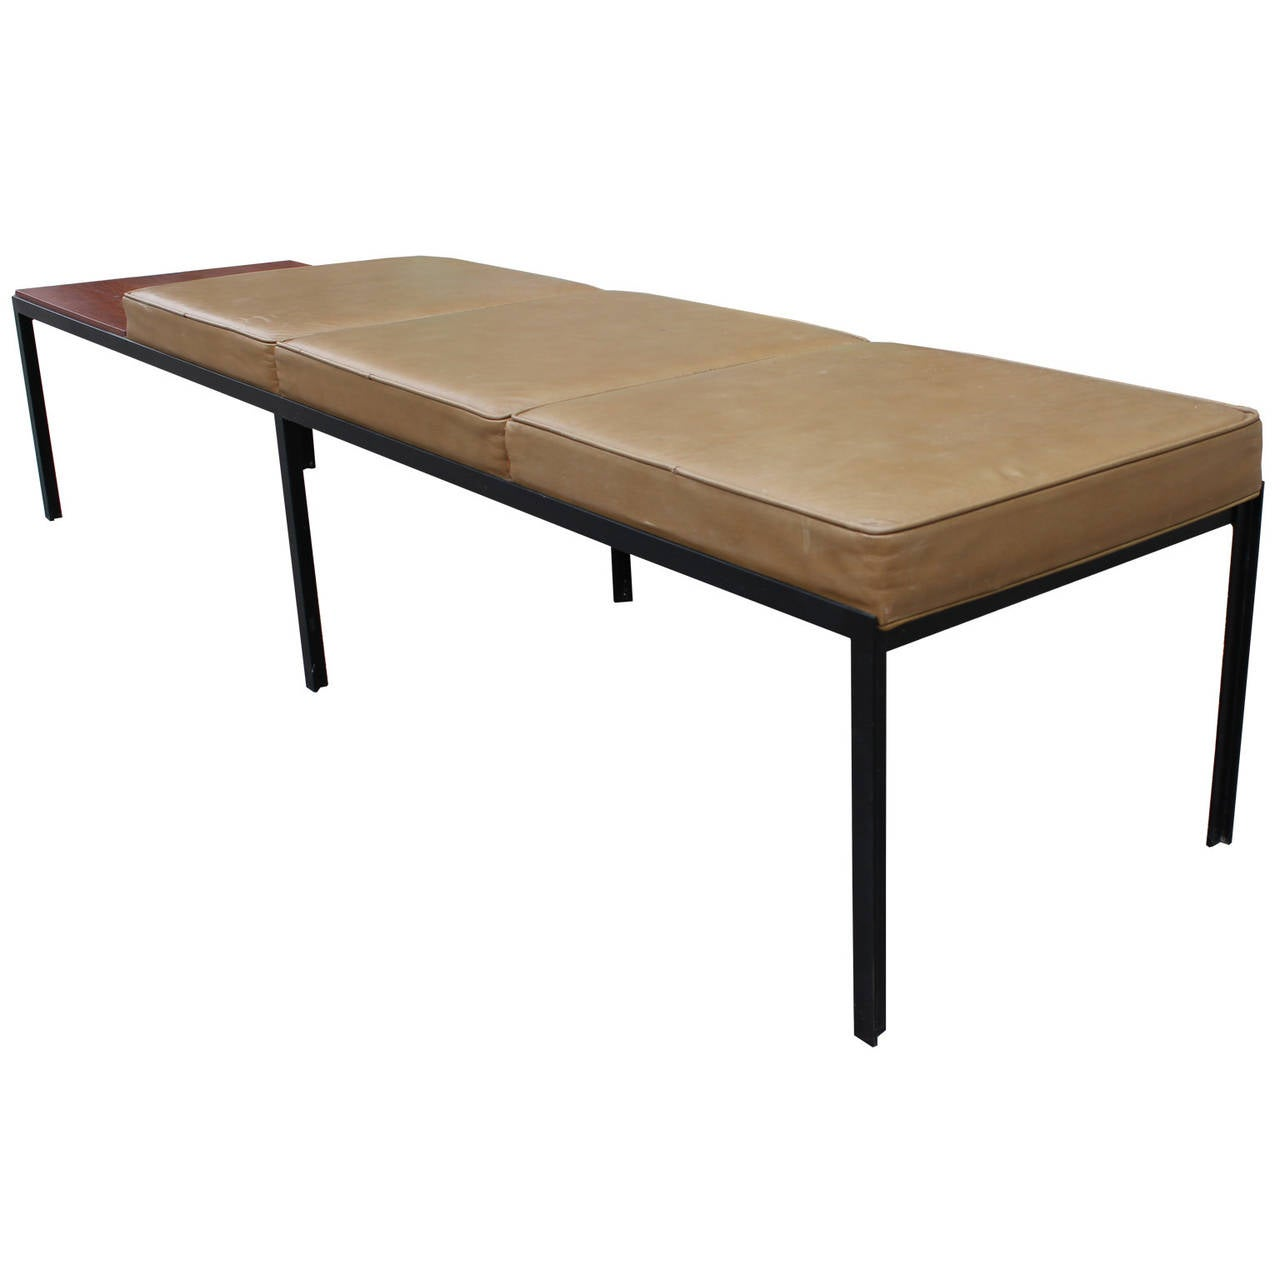 Wonderful image of Florence Knoll T Angle Leather and Walnut 3 Seat Bench at 1stdibs with #6A4C34 color and 1280x1280 pixels